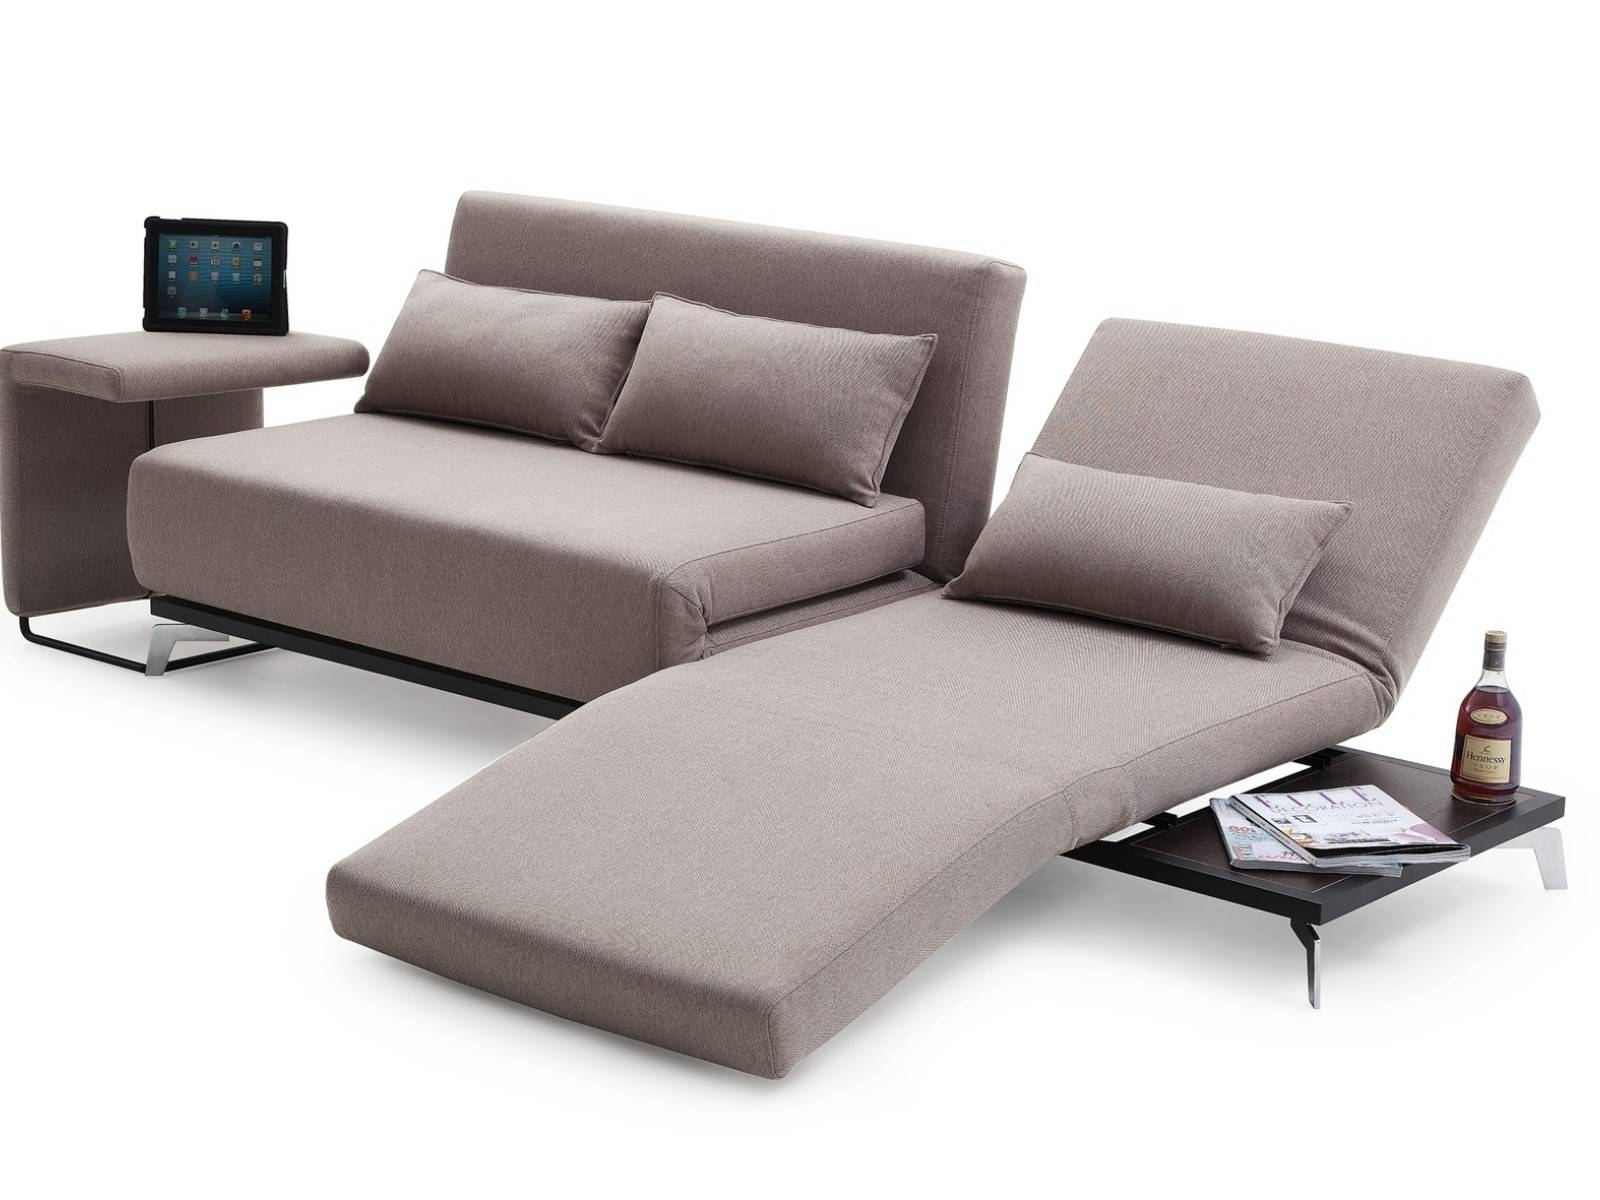 Best 30 of Single Sofa Beds